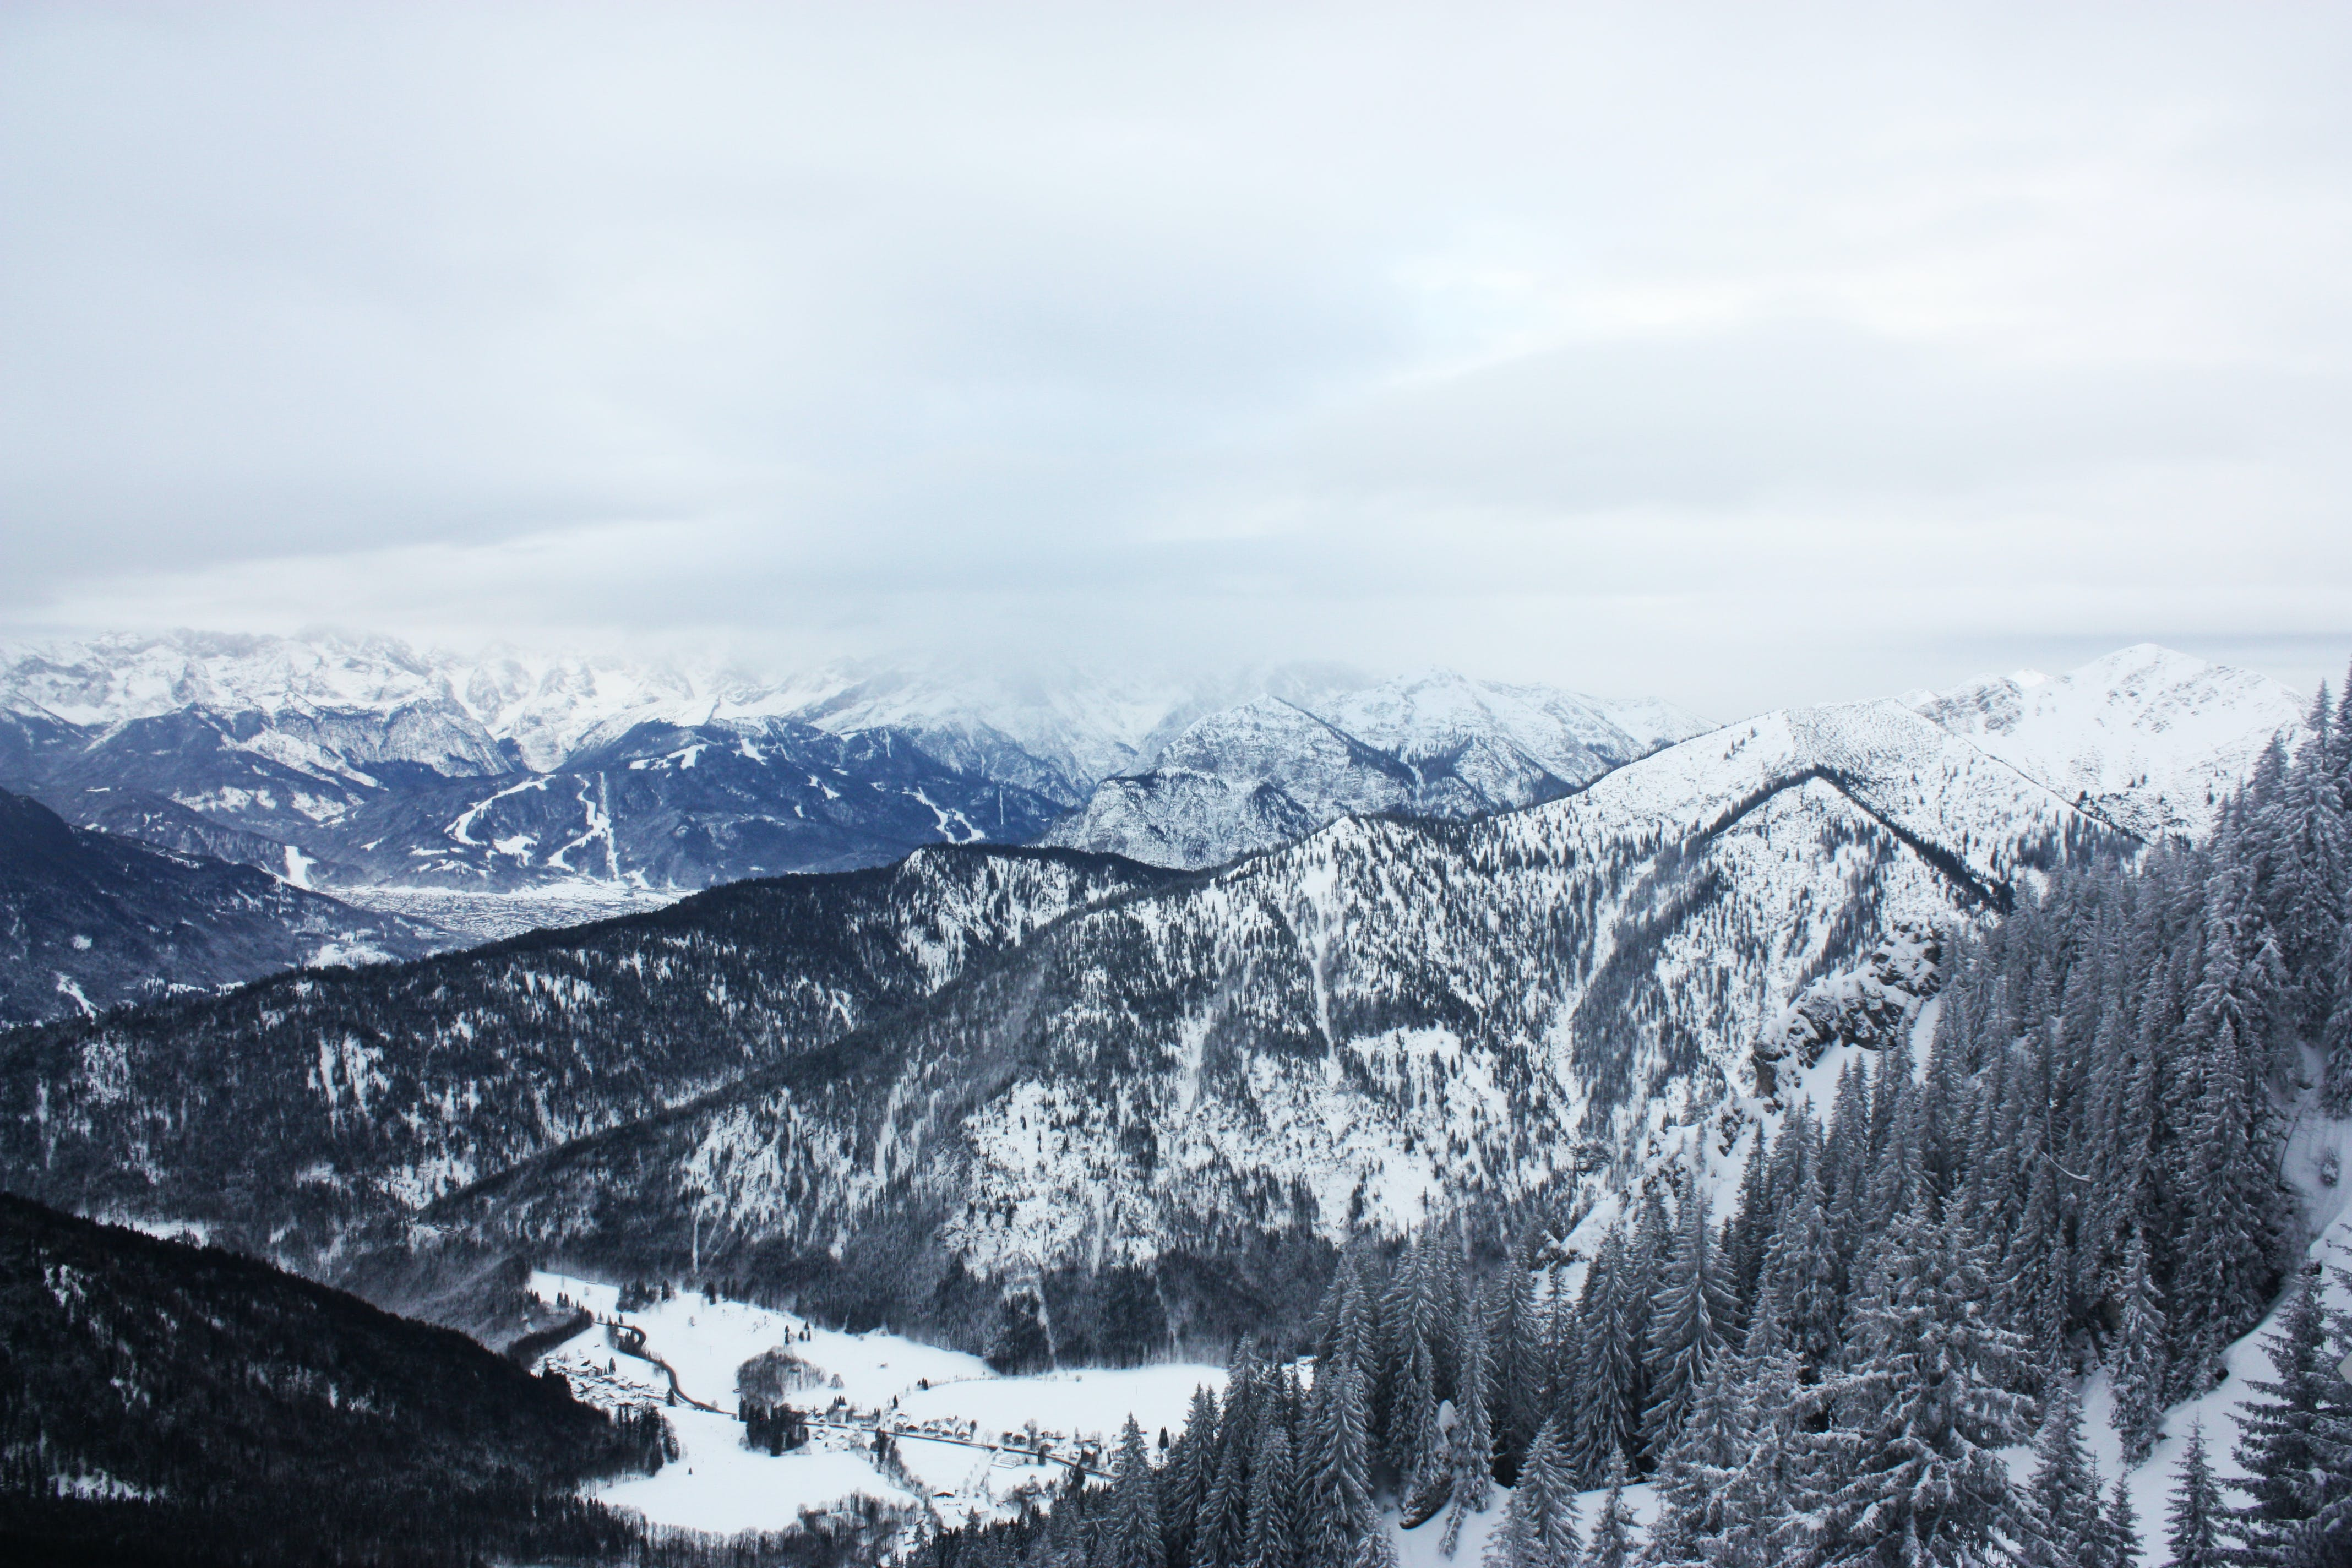 Scenic View of Mountains Covered with Snow